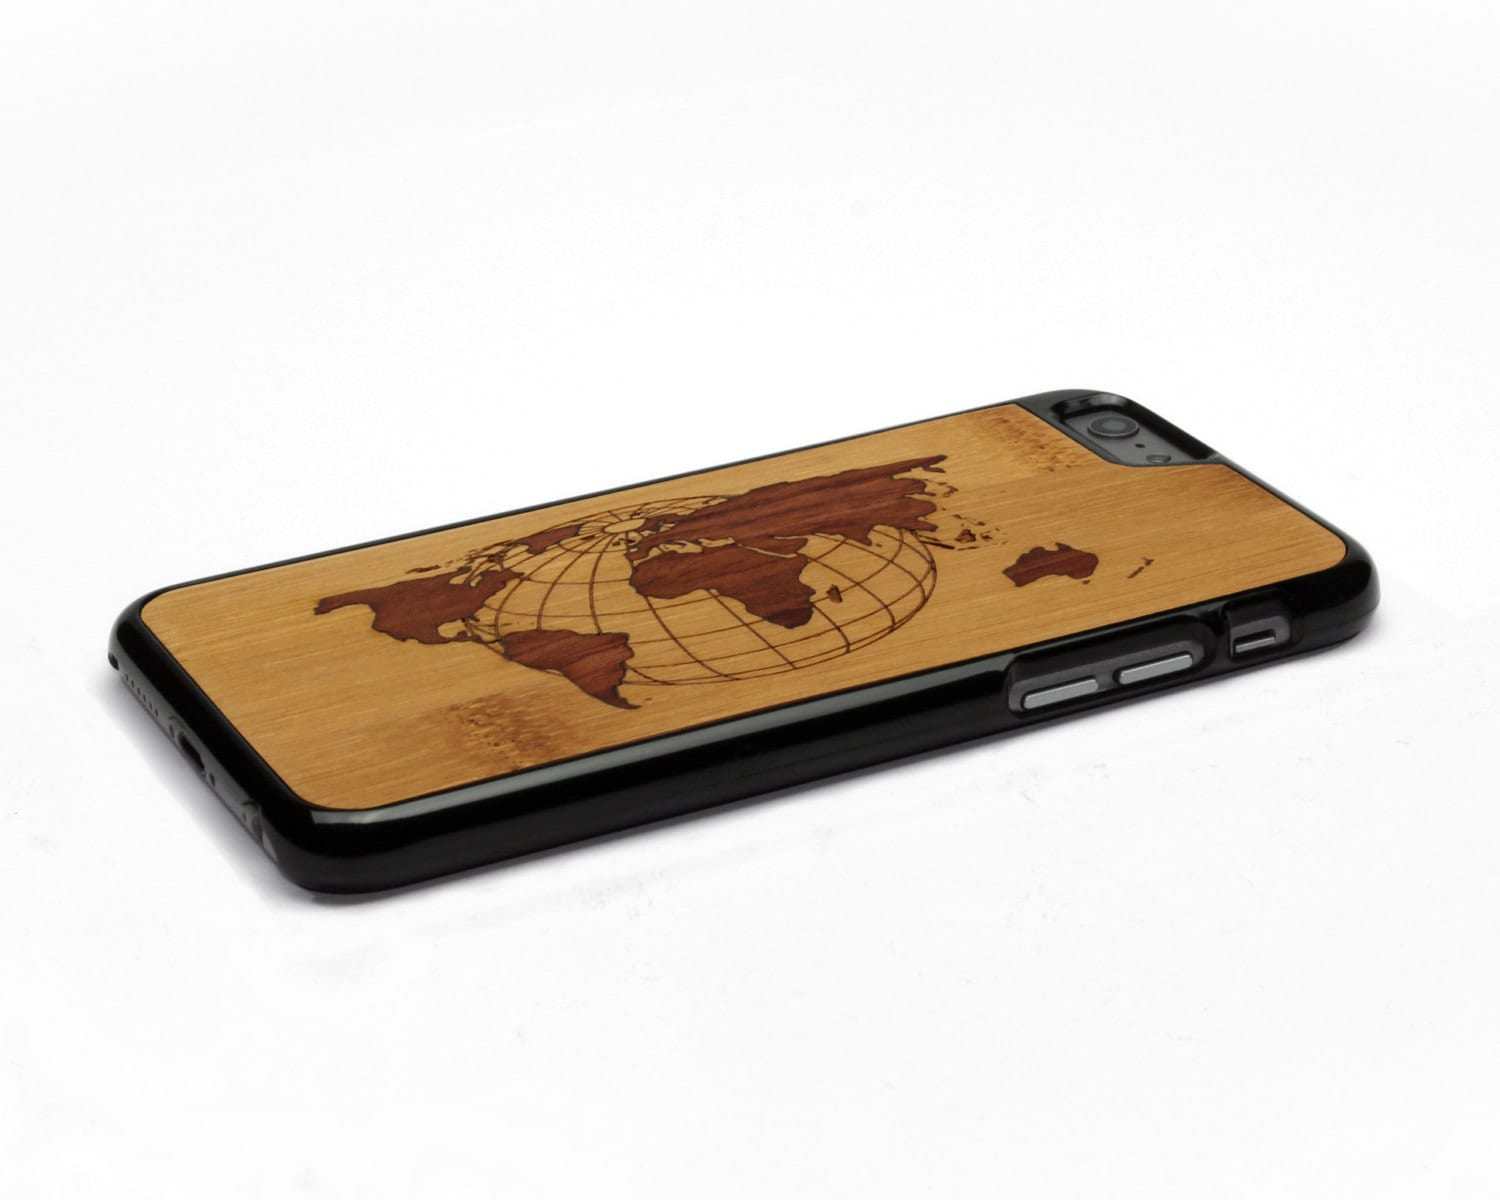 World Map Iphone 6s Case.Iphone 6 Case Wood World Map Inlay Bamboo Rosewood Wood